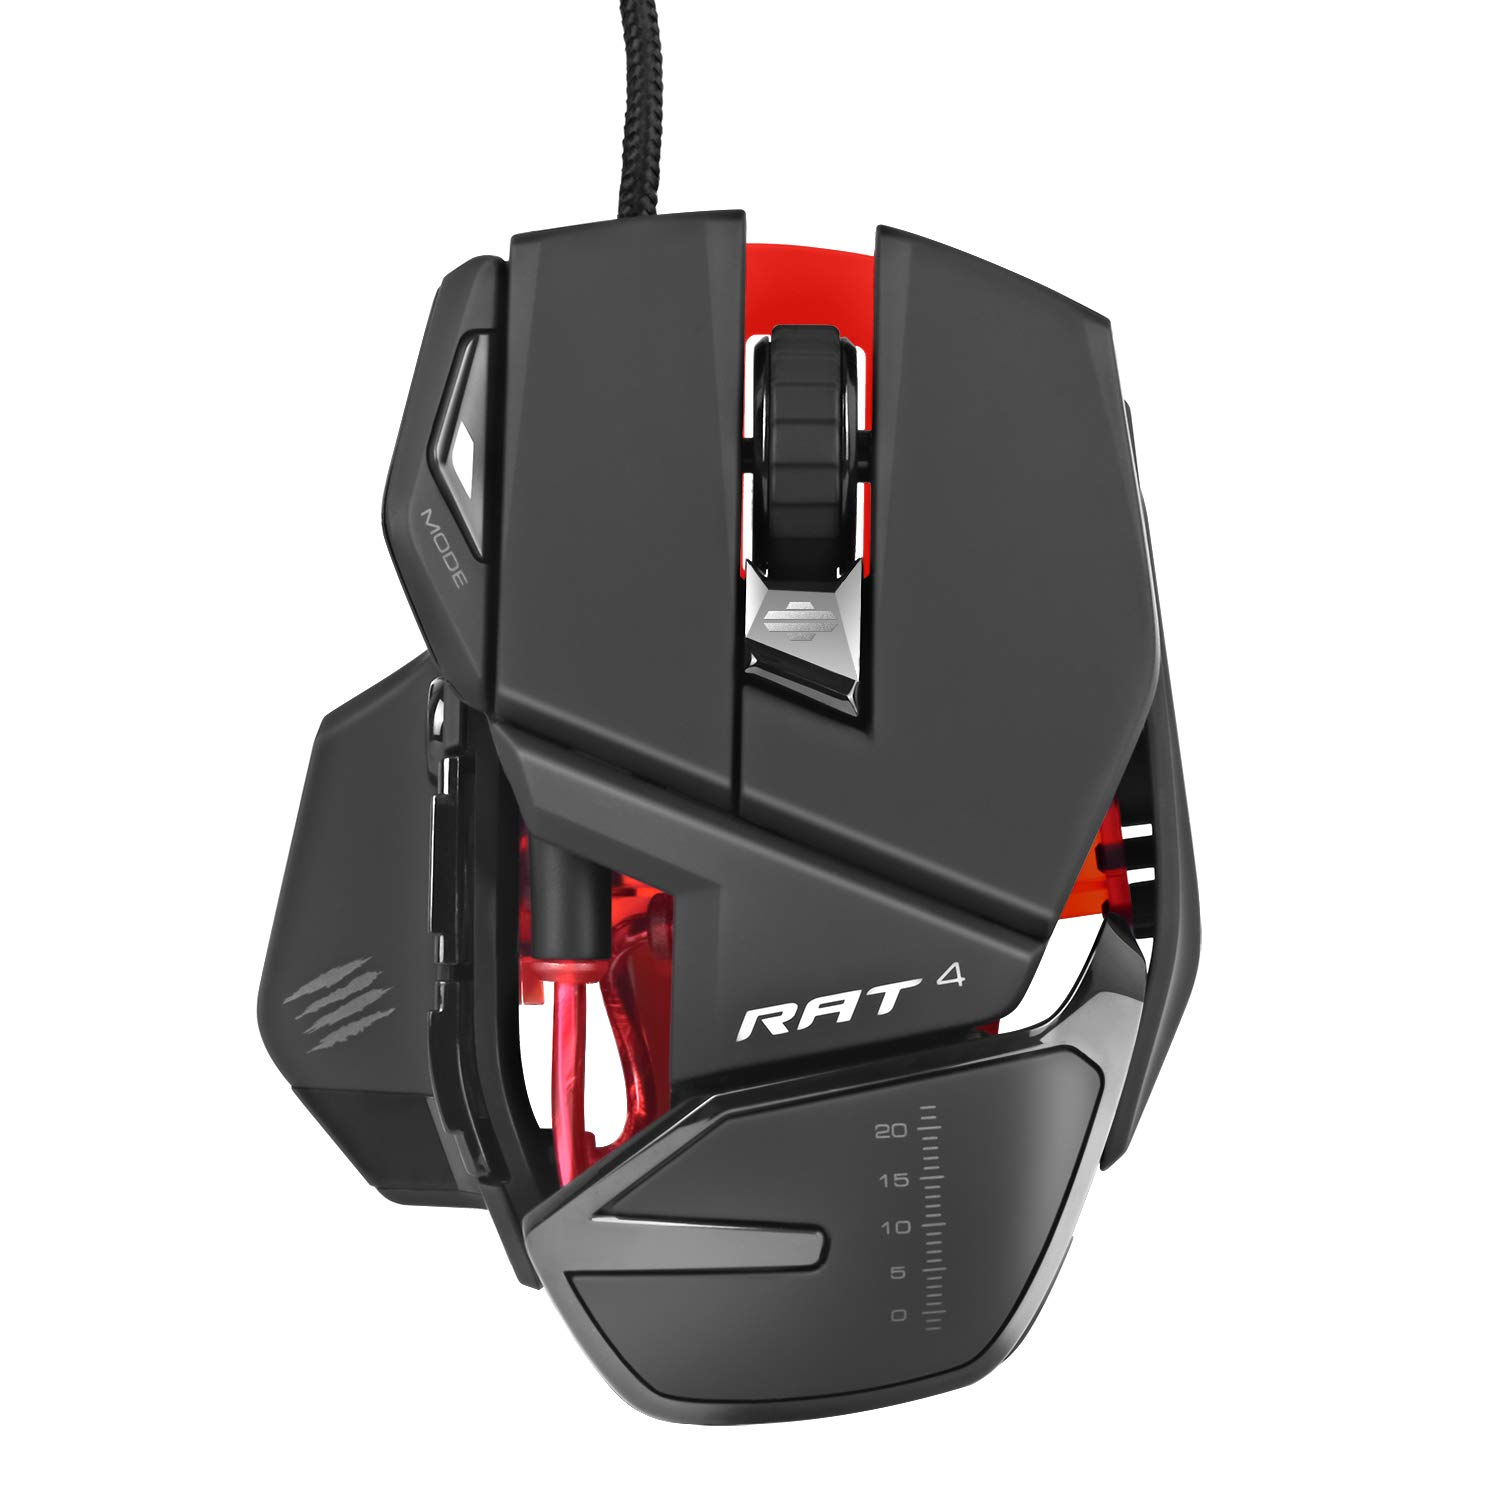 Mad Catz RAT4 Wired Optical Adjustable Gaming Mouse for PC and Mac with 9 Programmable Buttons Black